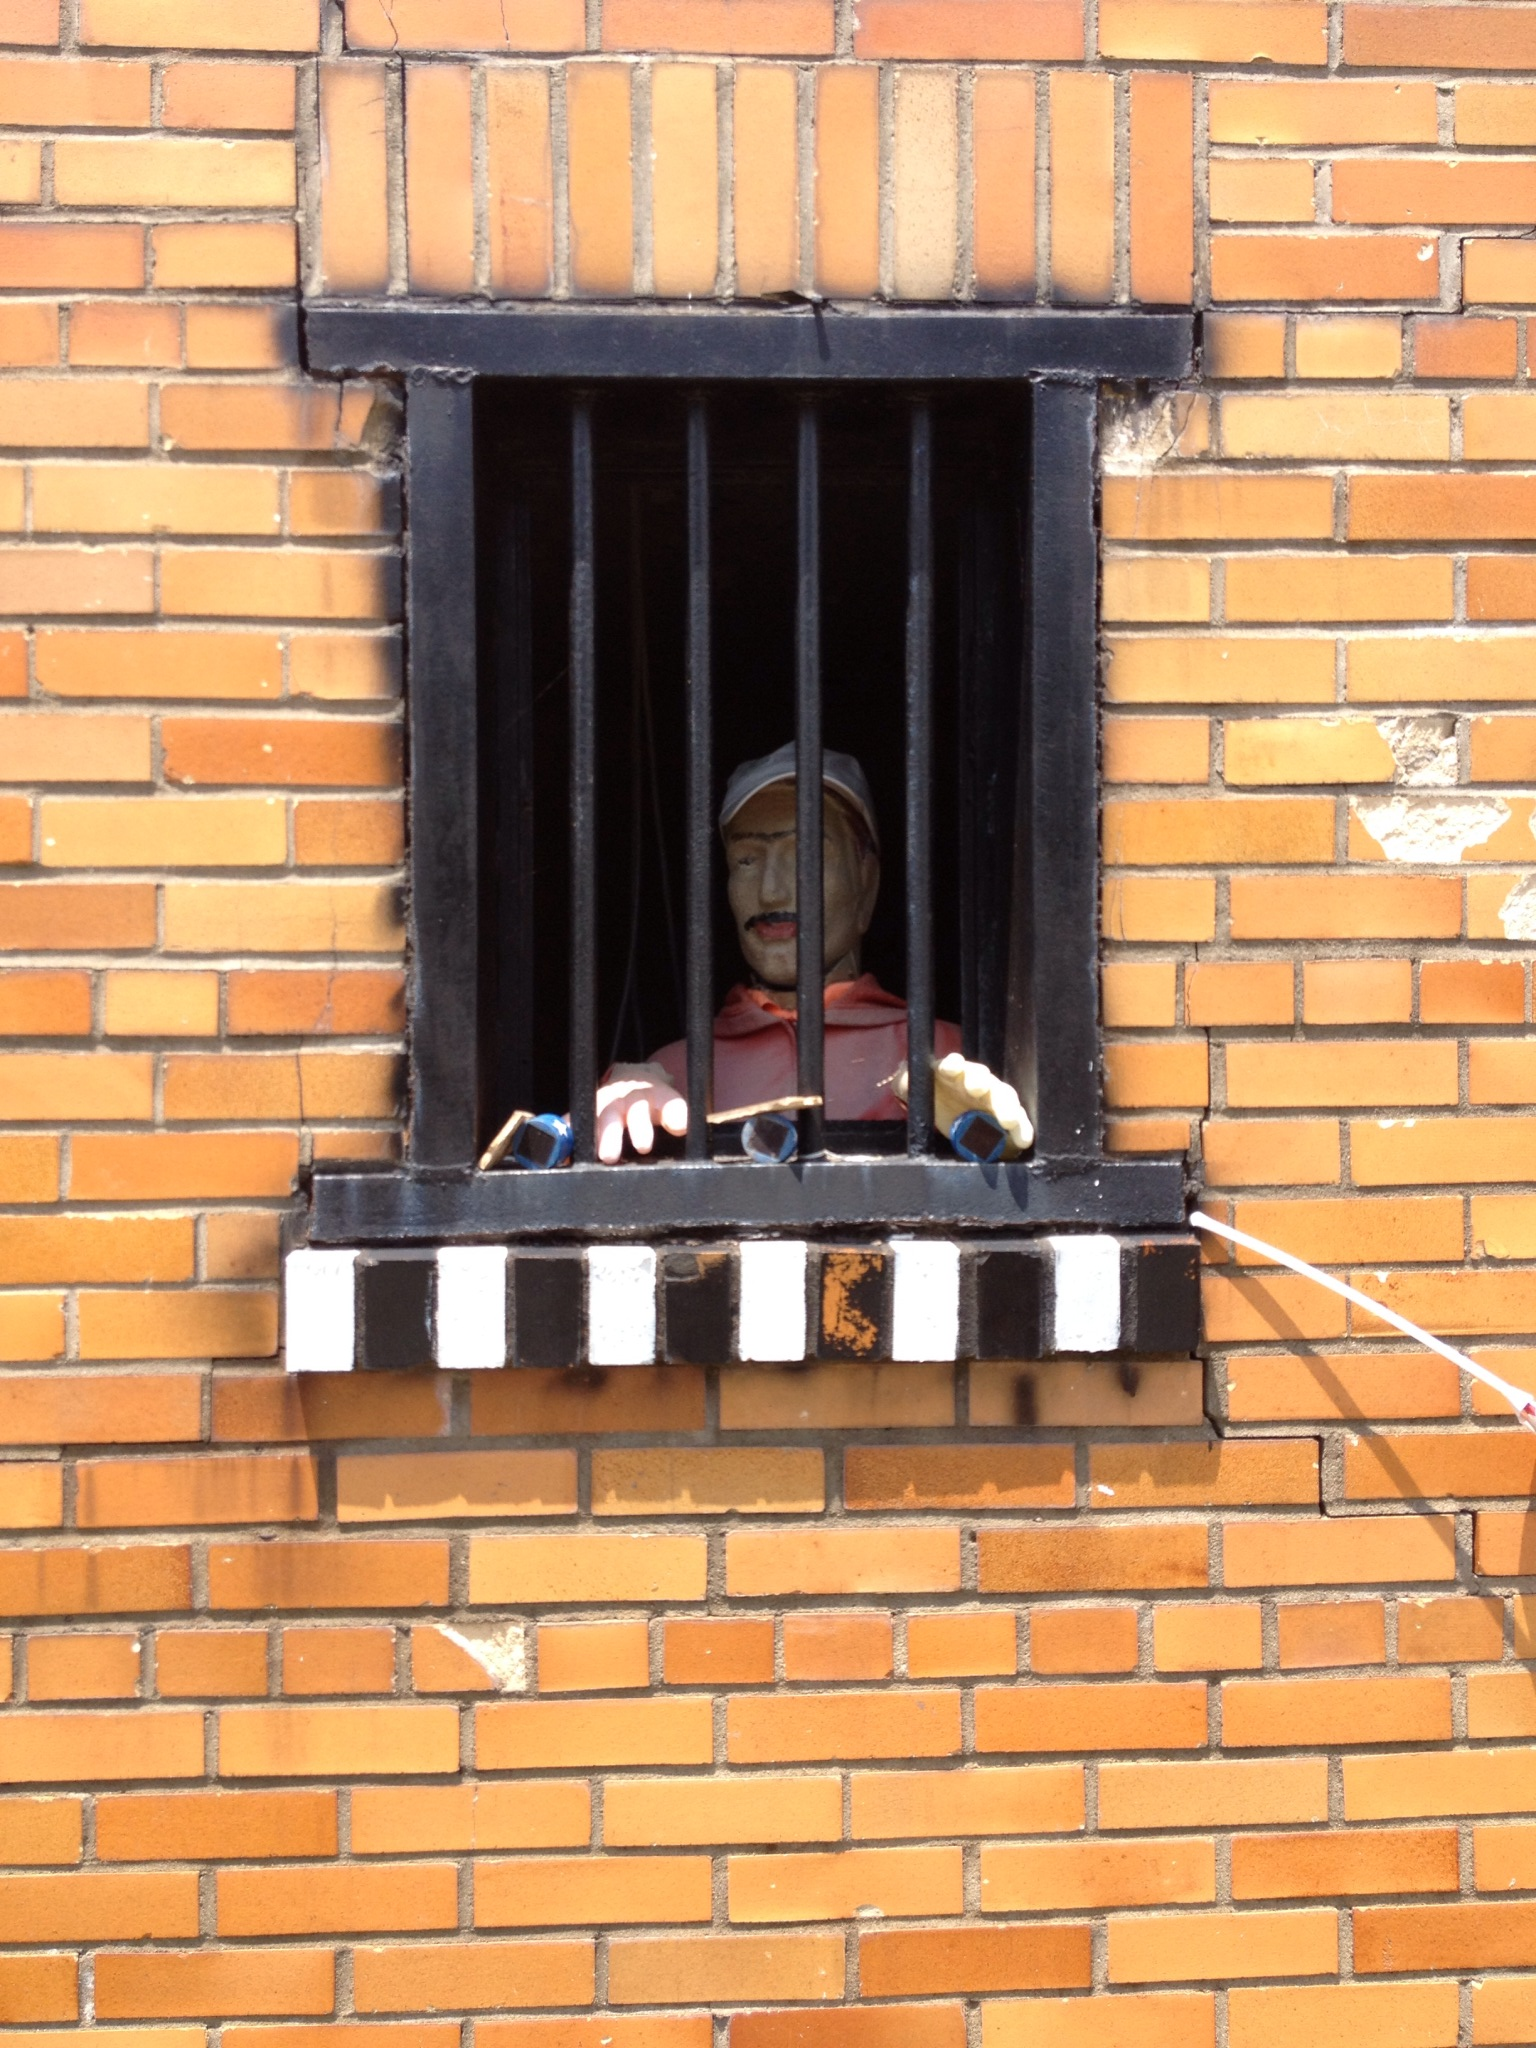 The jail features a mannequin in each of the windows